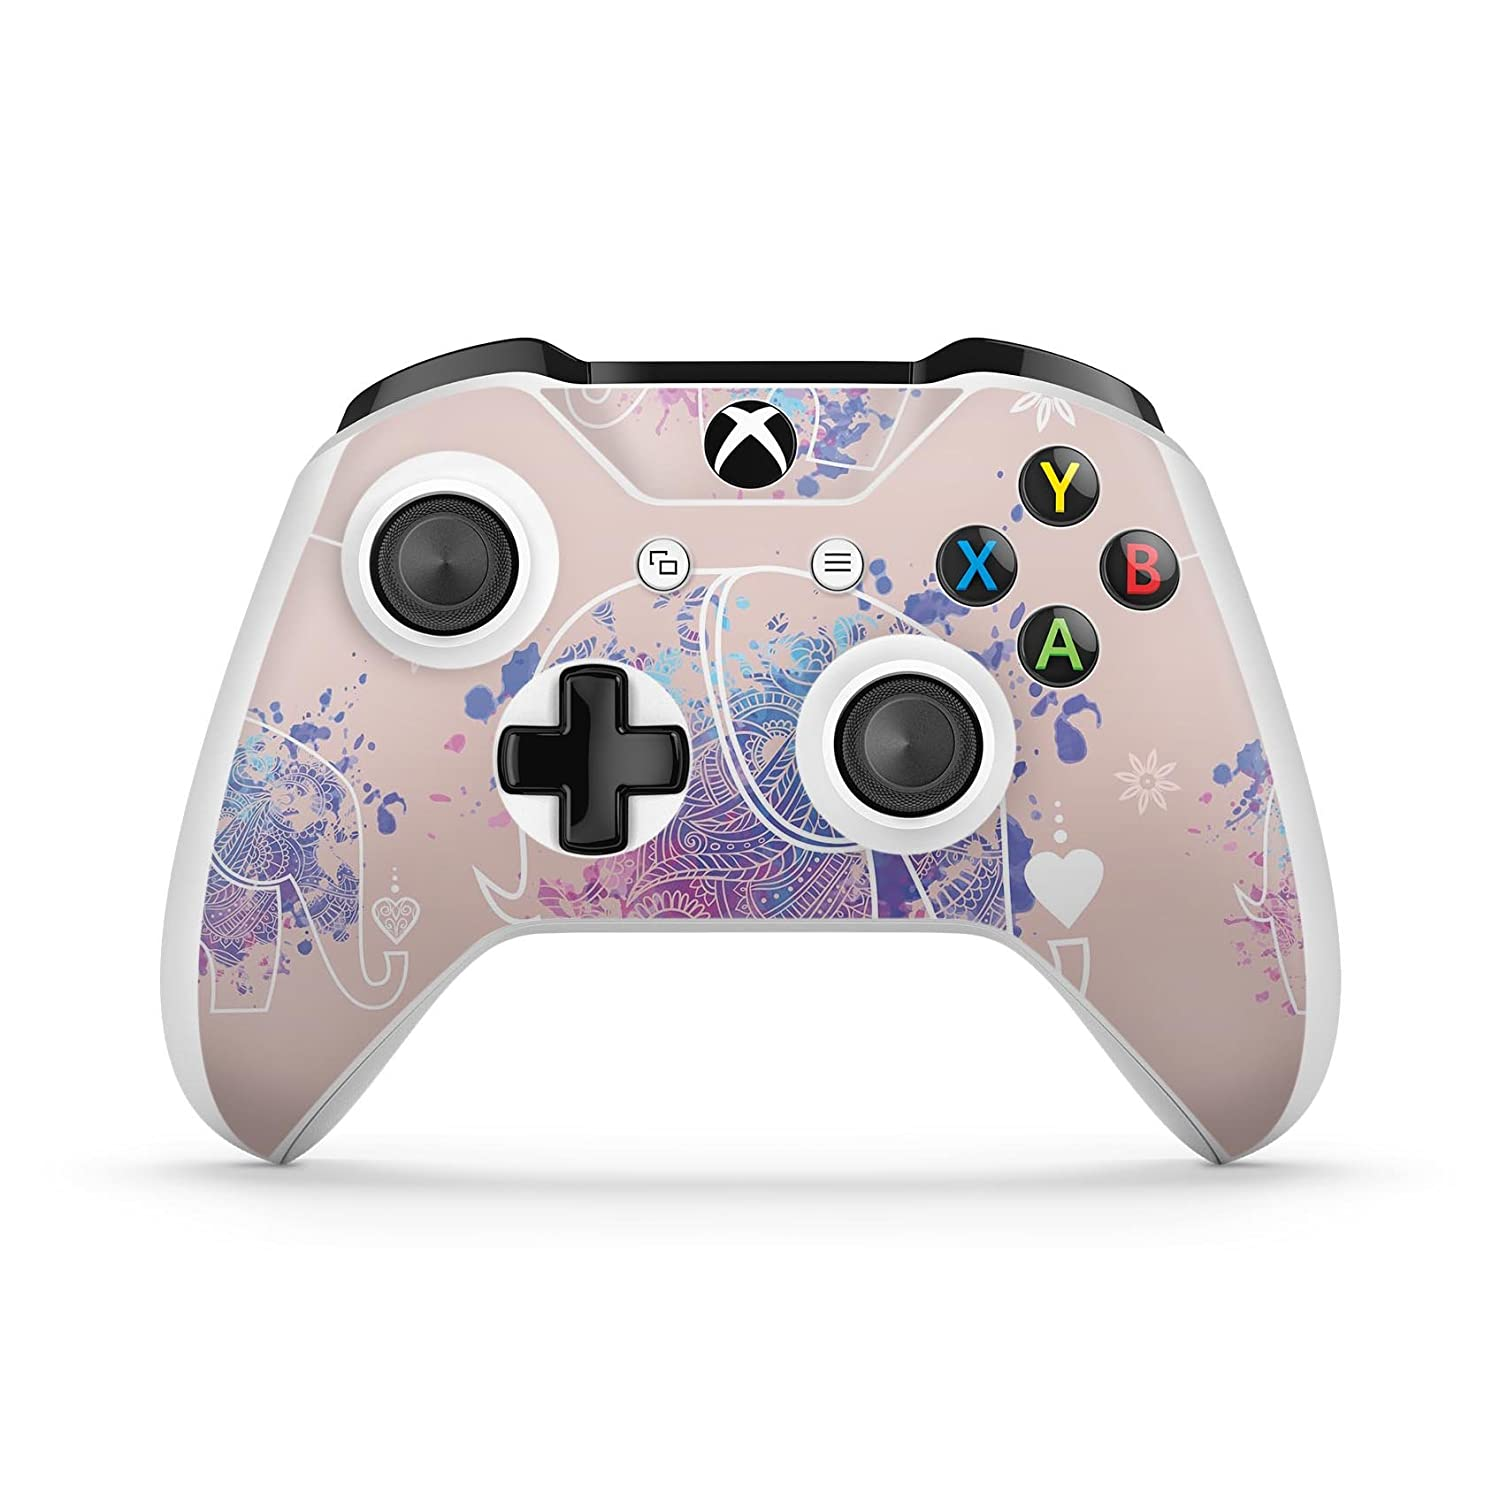 Fun Sacred Elephants - Protective Vinyl DesignSkinz Decal Sticker Skin-Kit for the Microsoft Xbox ONE / ONE S Controller